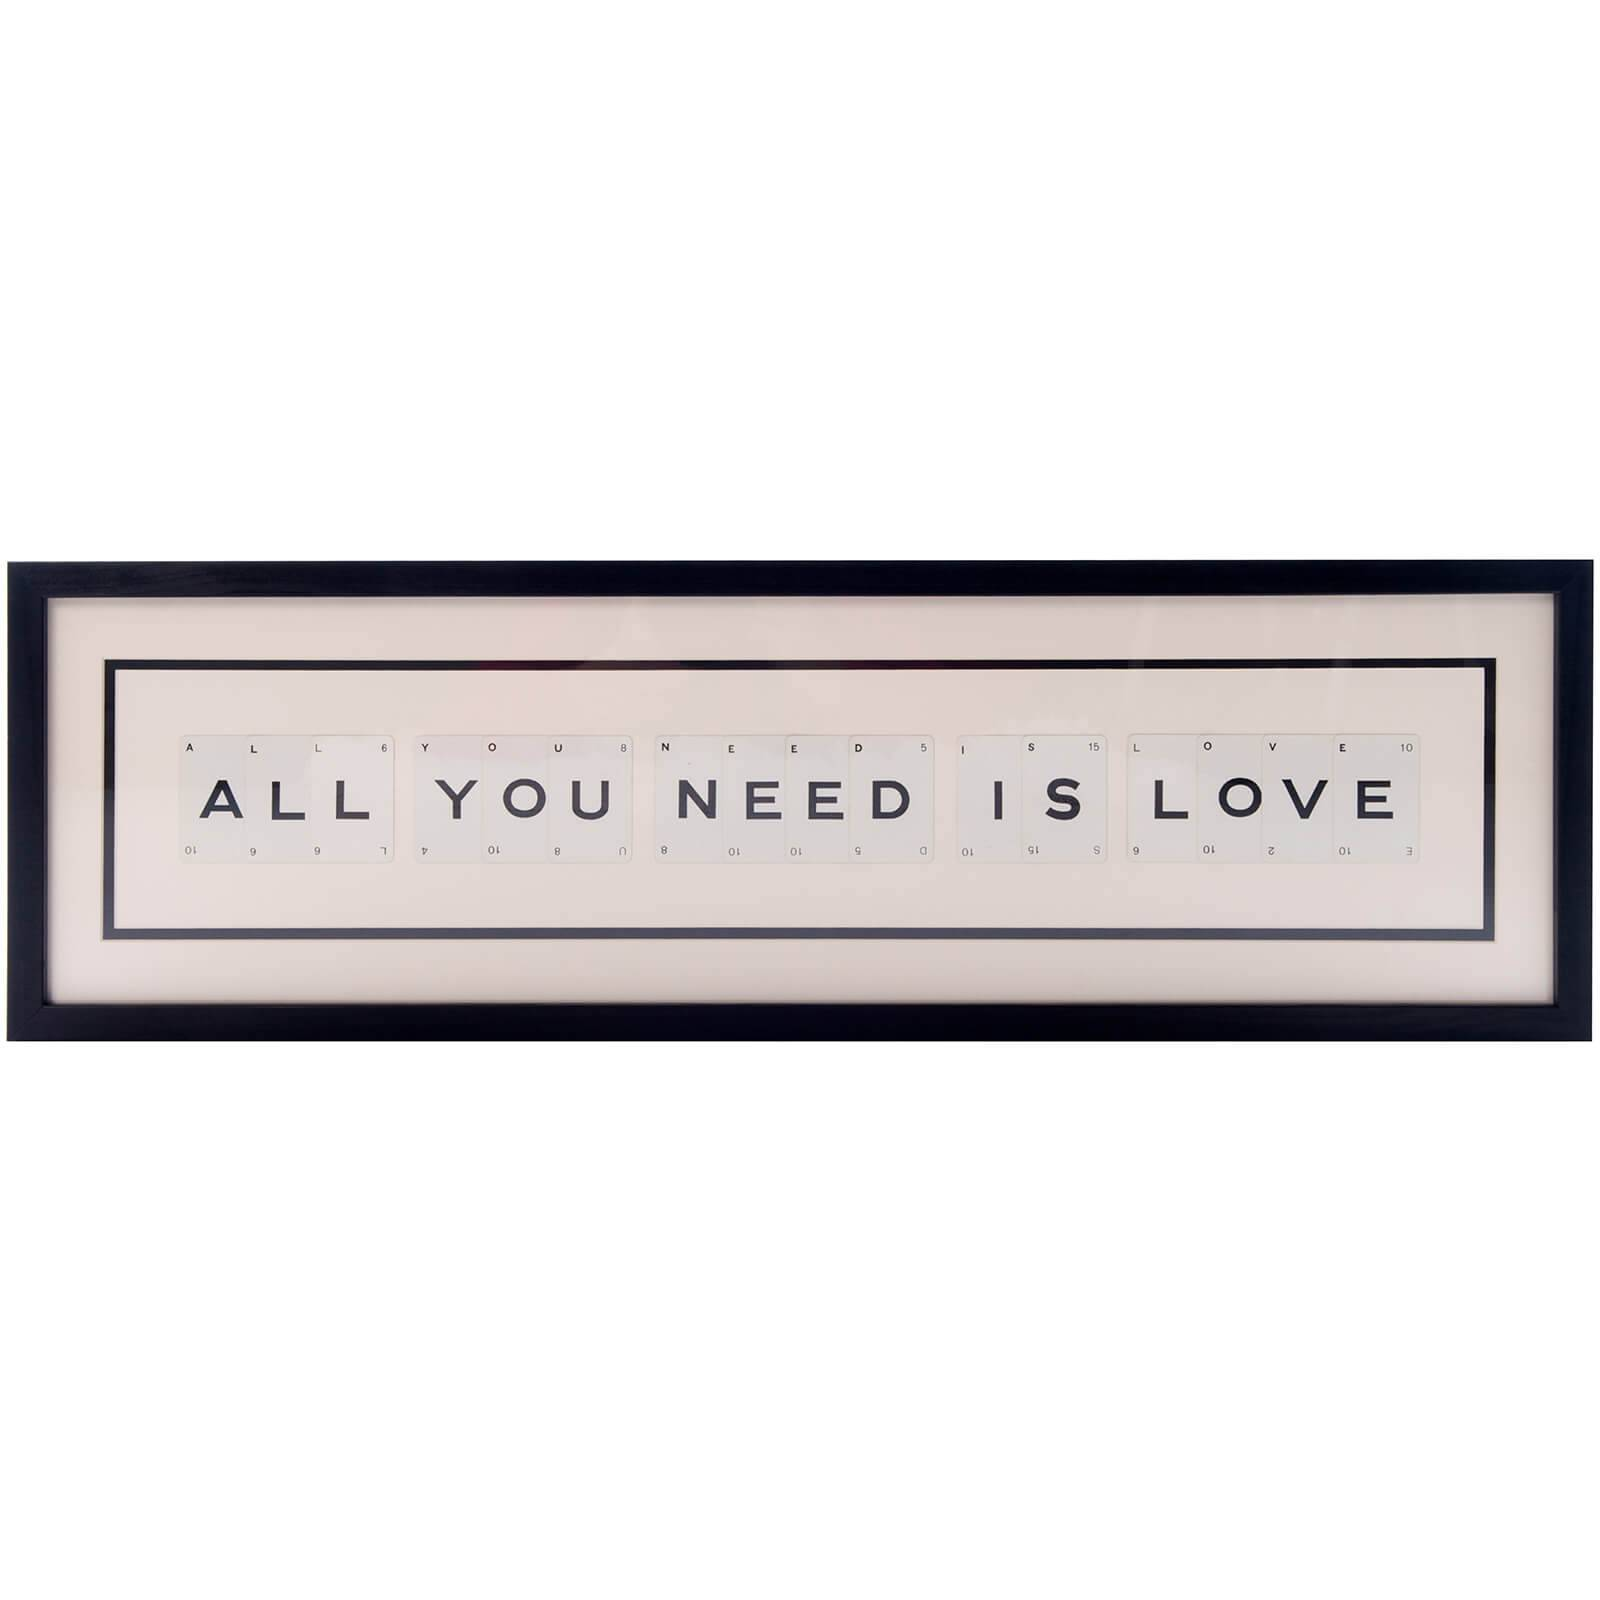 Vintage Playing Cards All You Need is Love Framed Wall Art